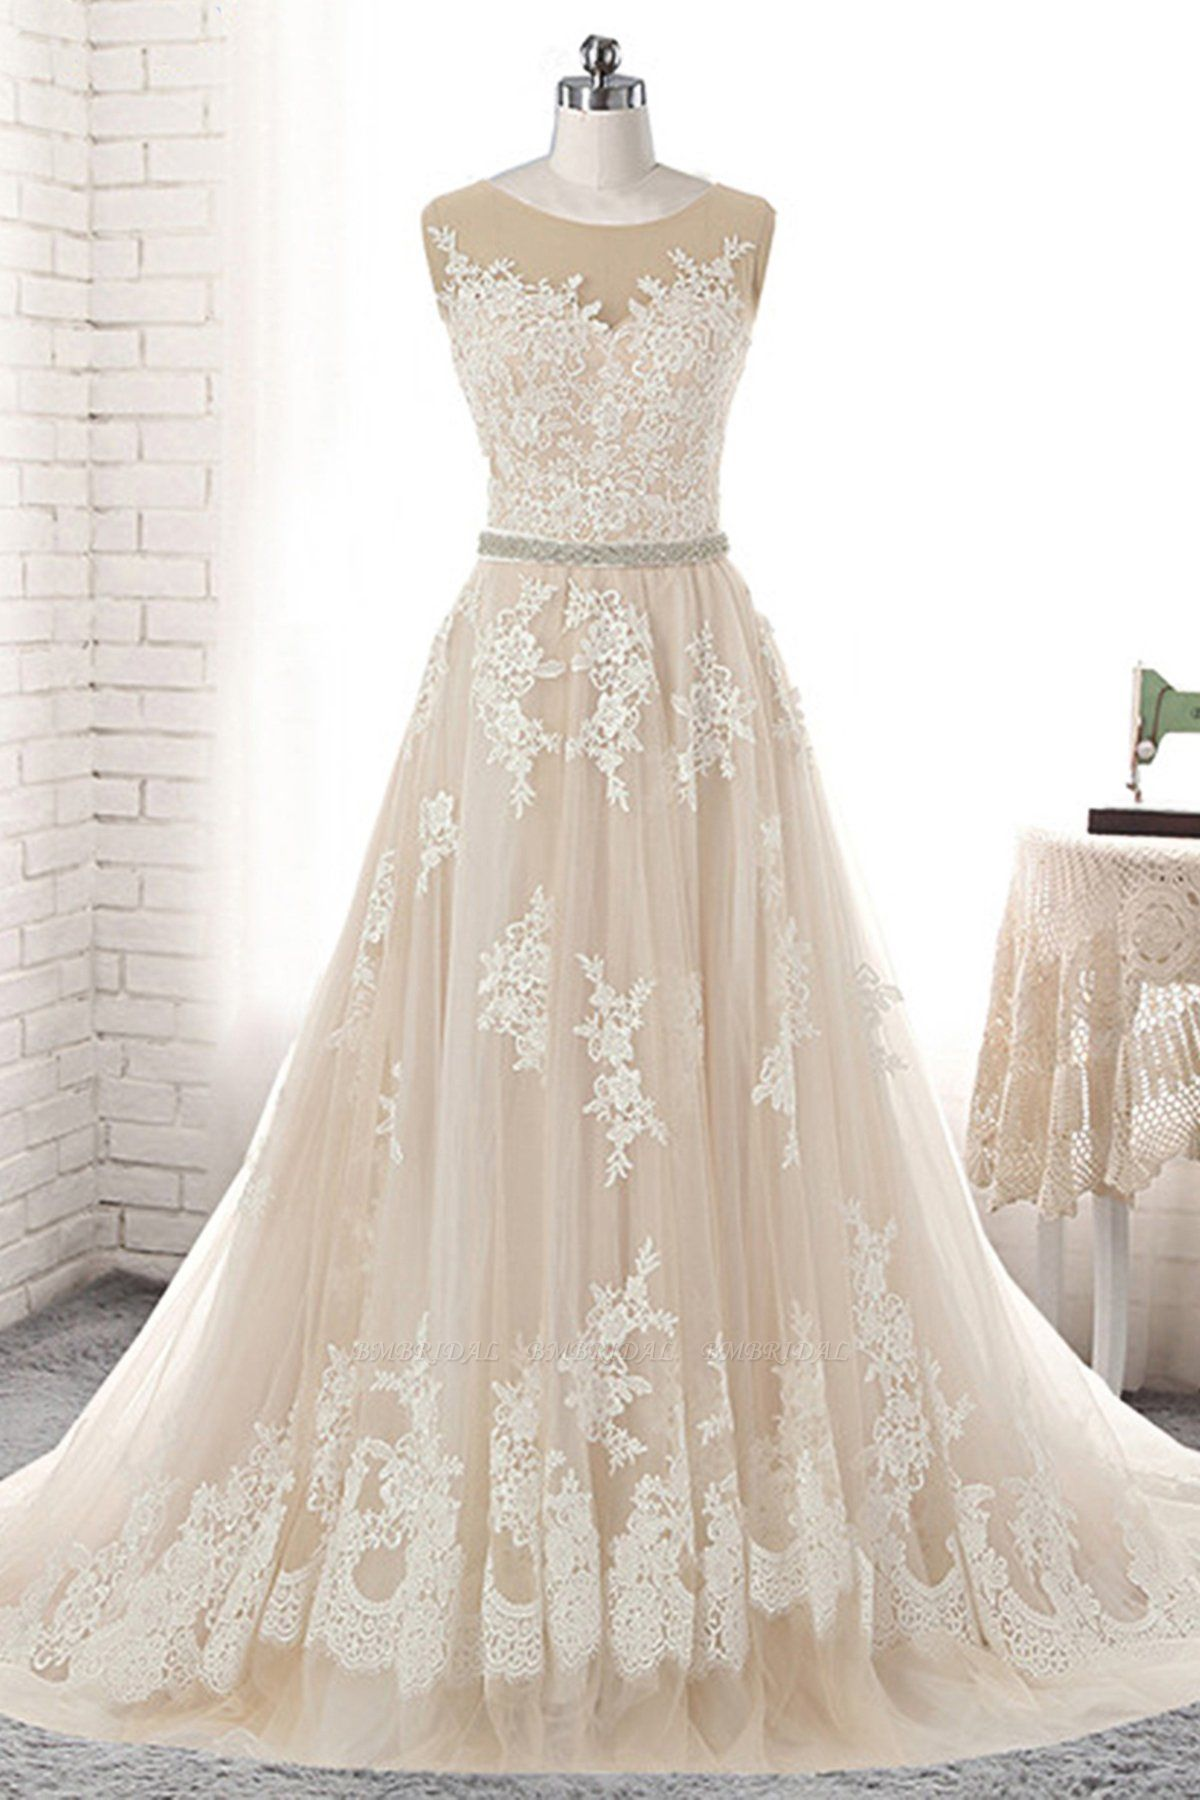 BMbridal Glamorous Creamy Tulle Round Neck Long Wedding Dress White Lace Applique Bridal Gowns On Sale